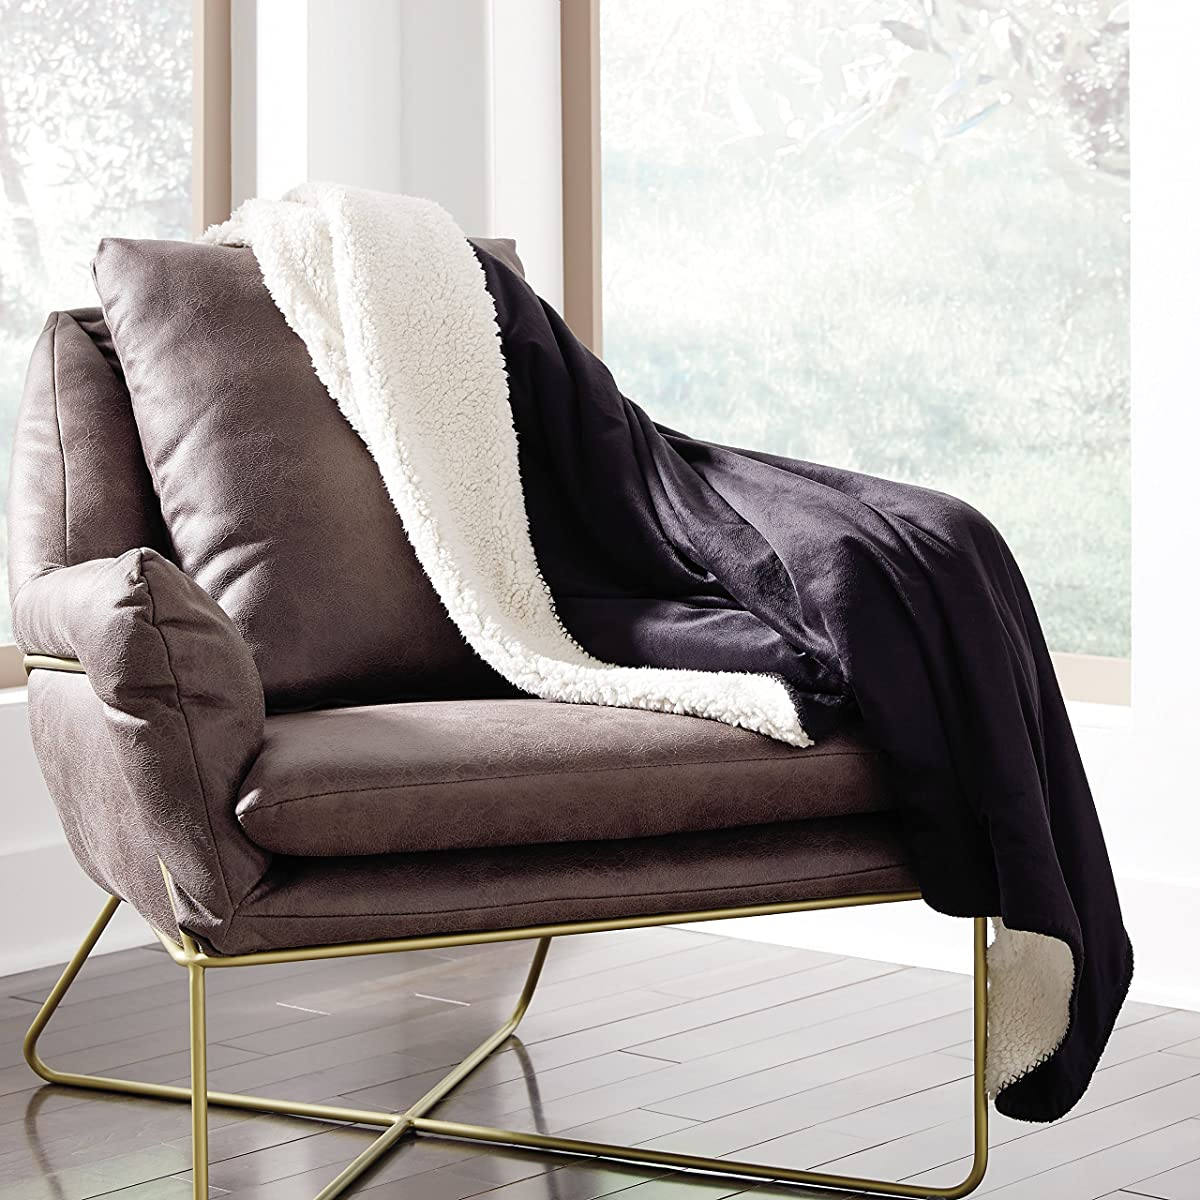 Ashley Furniture Signature Design - Crosshaven Accent Chair - Contemporary - Gray Faux Leather Loose Cushions - Gold Metallic Legs